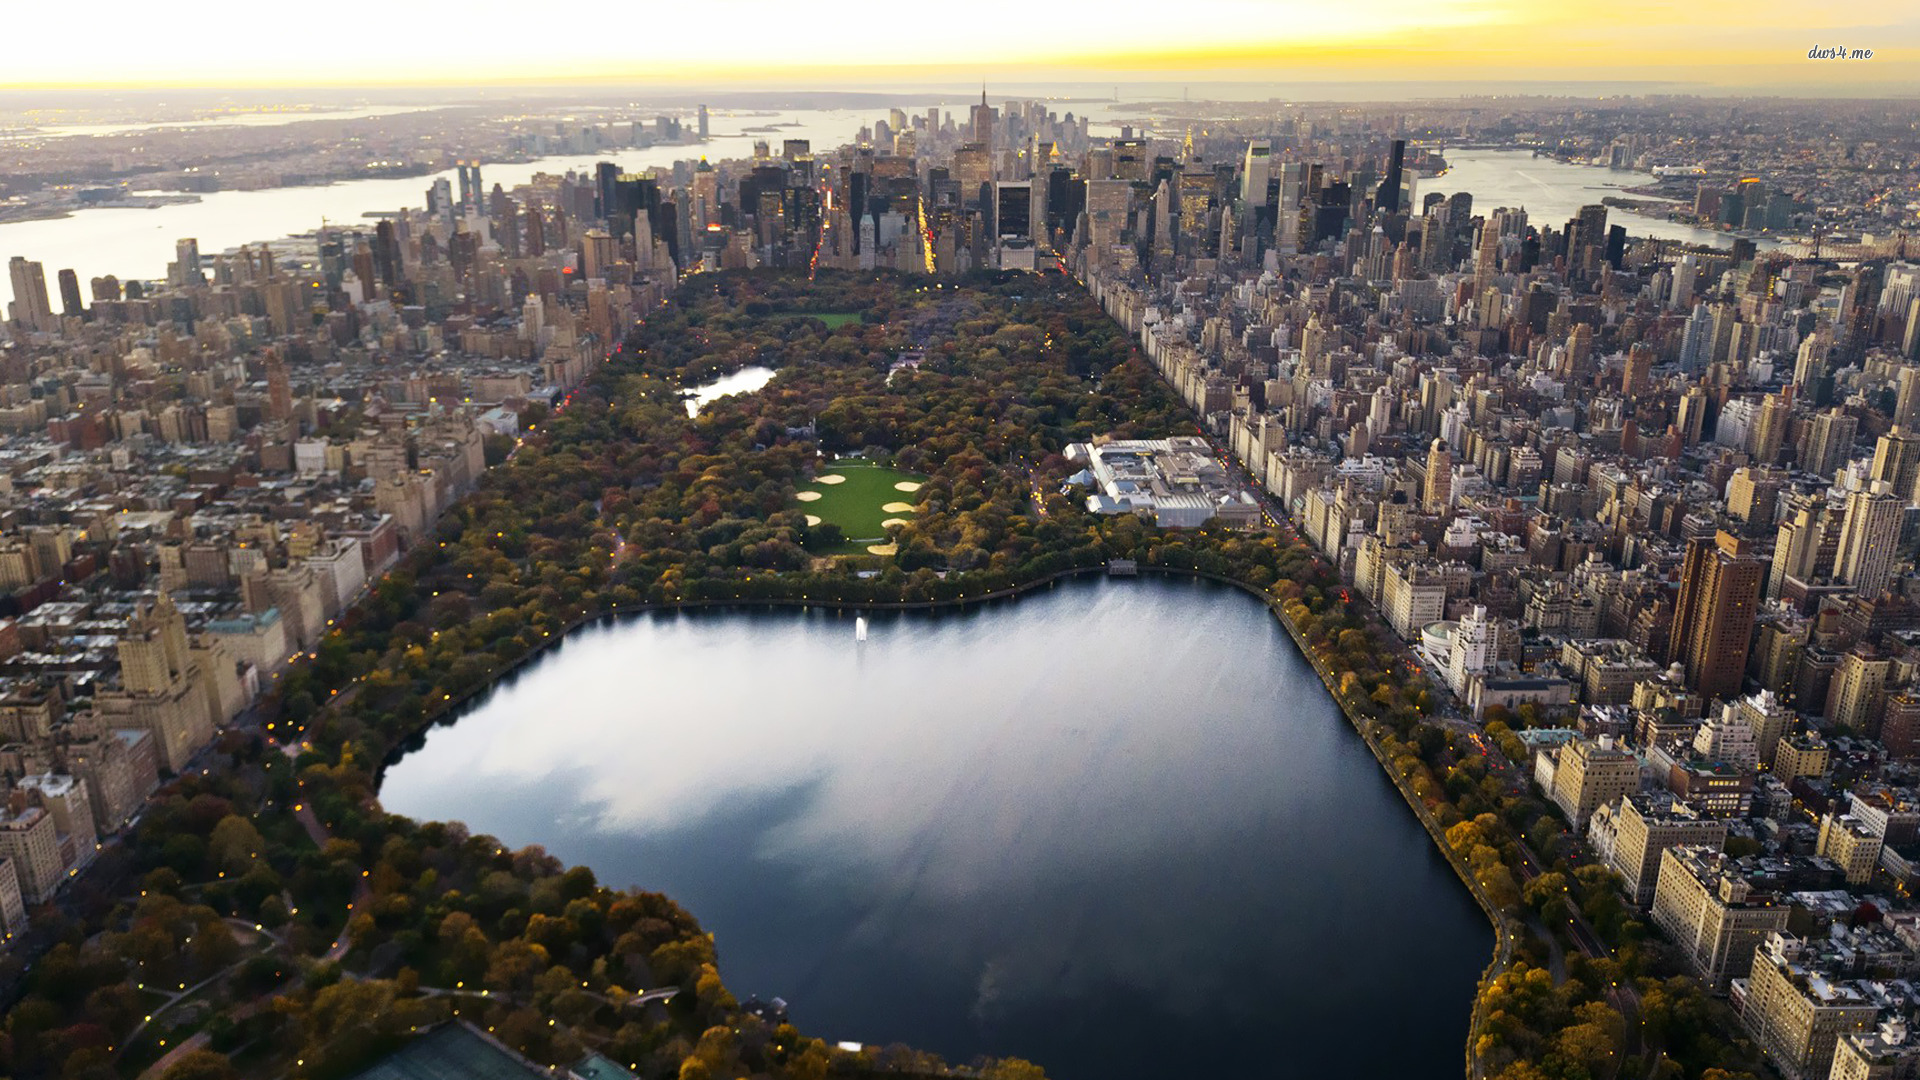 11 Awesome Images To Describe Central Park New York